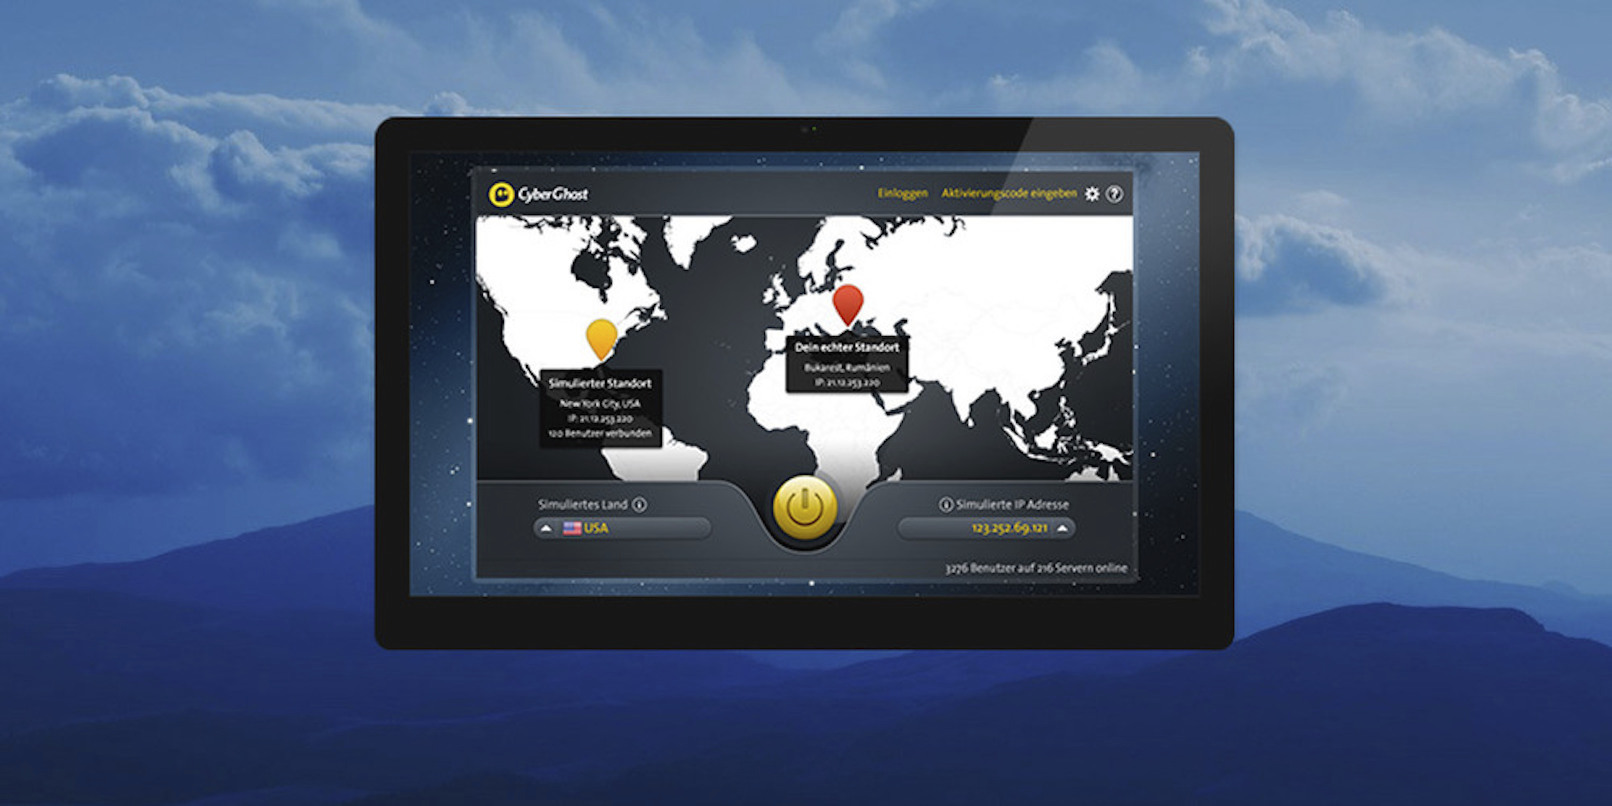 Enjoy encrypted internet, unlimited unlocked content with CyberGhost VPN (80% off)